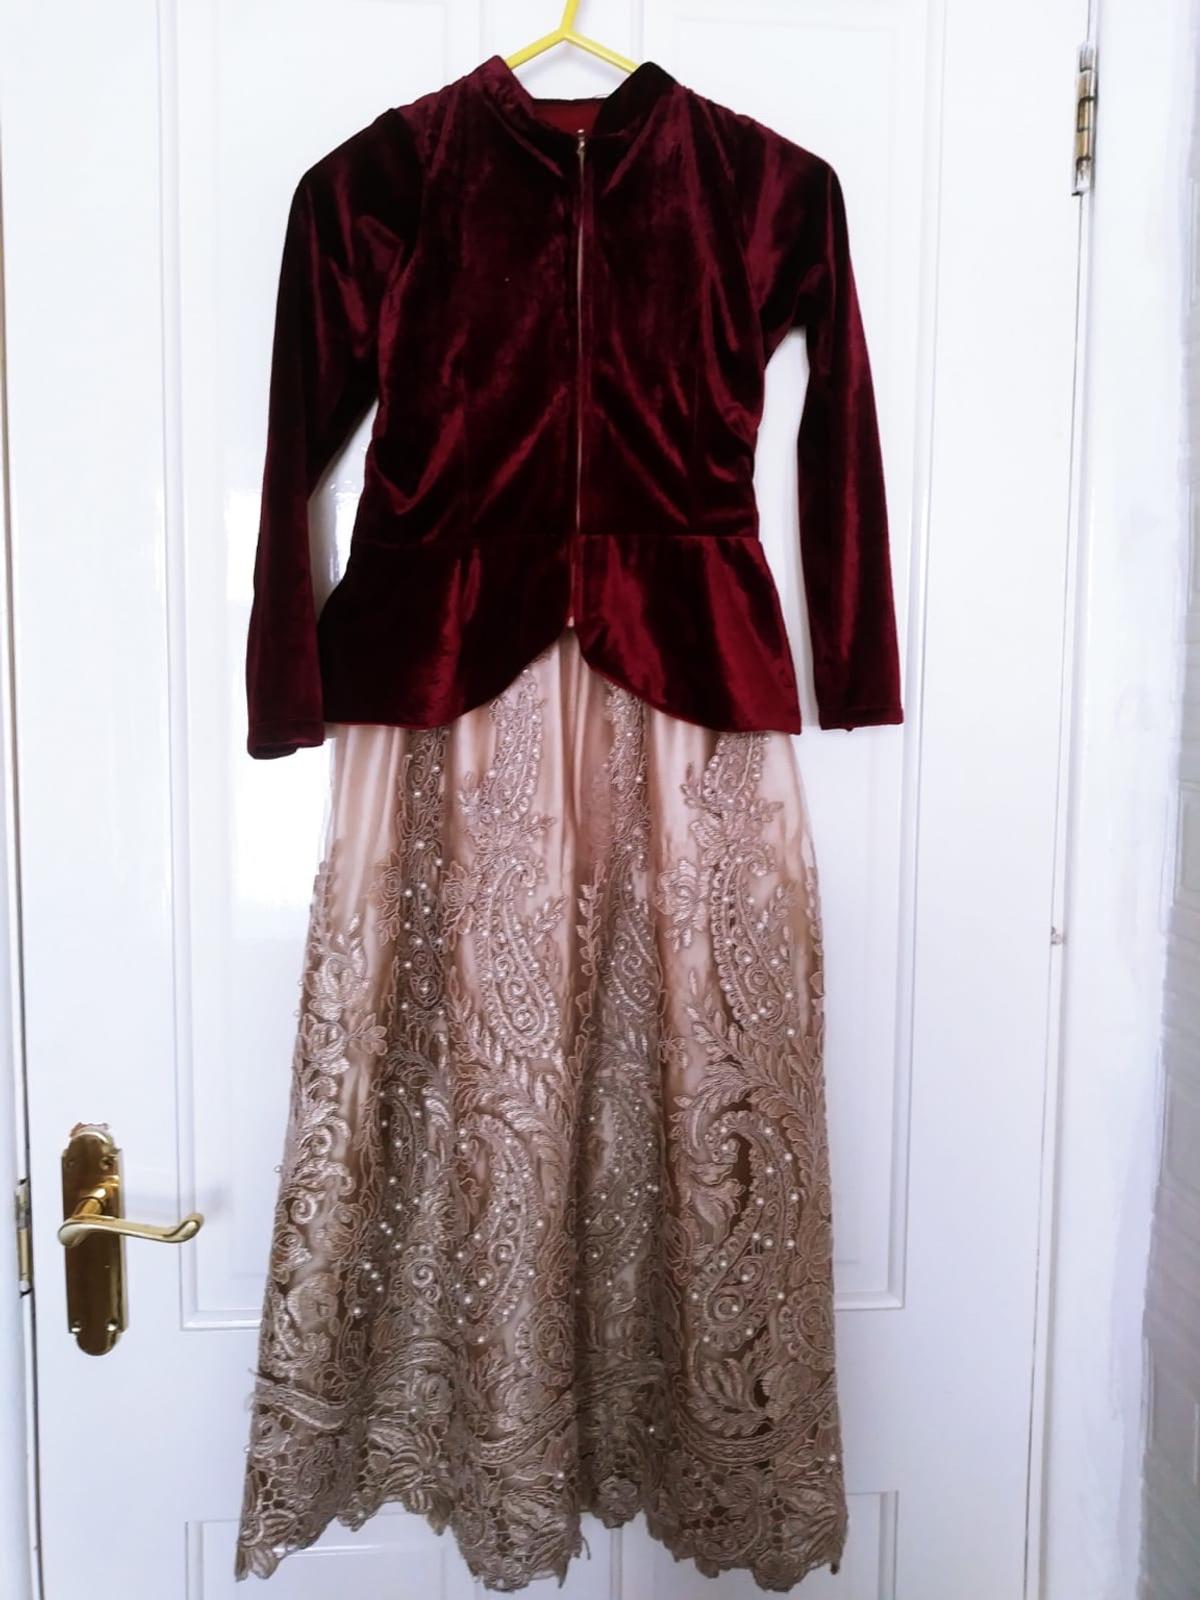 Girls Indian Party Dress Skirt And Top In Pr1 Preston For 16 00 For Sale Shpock